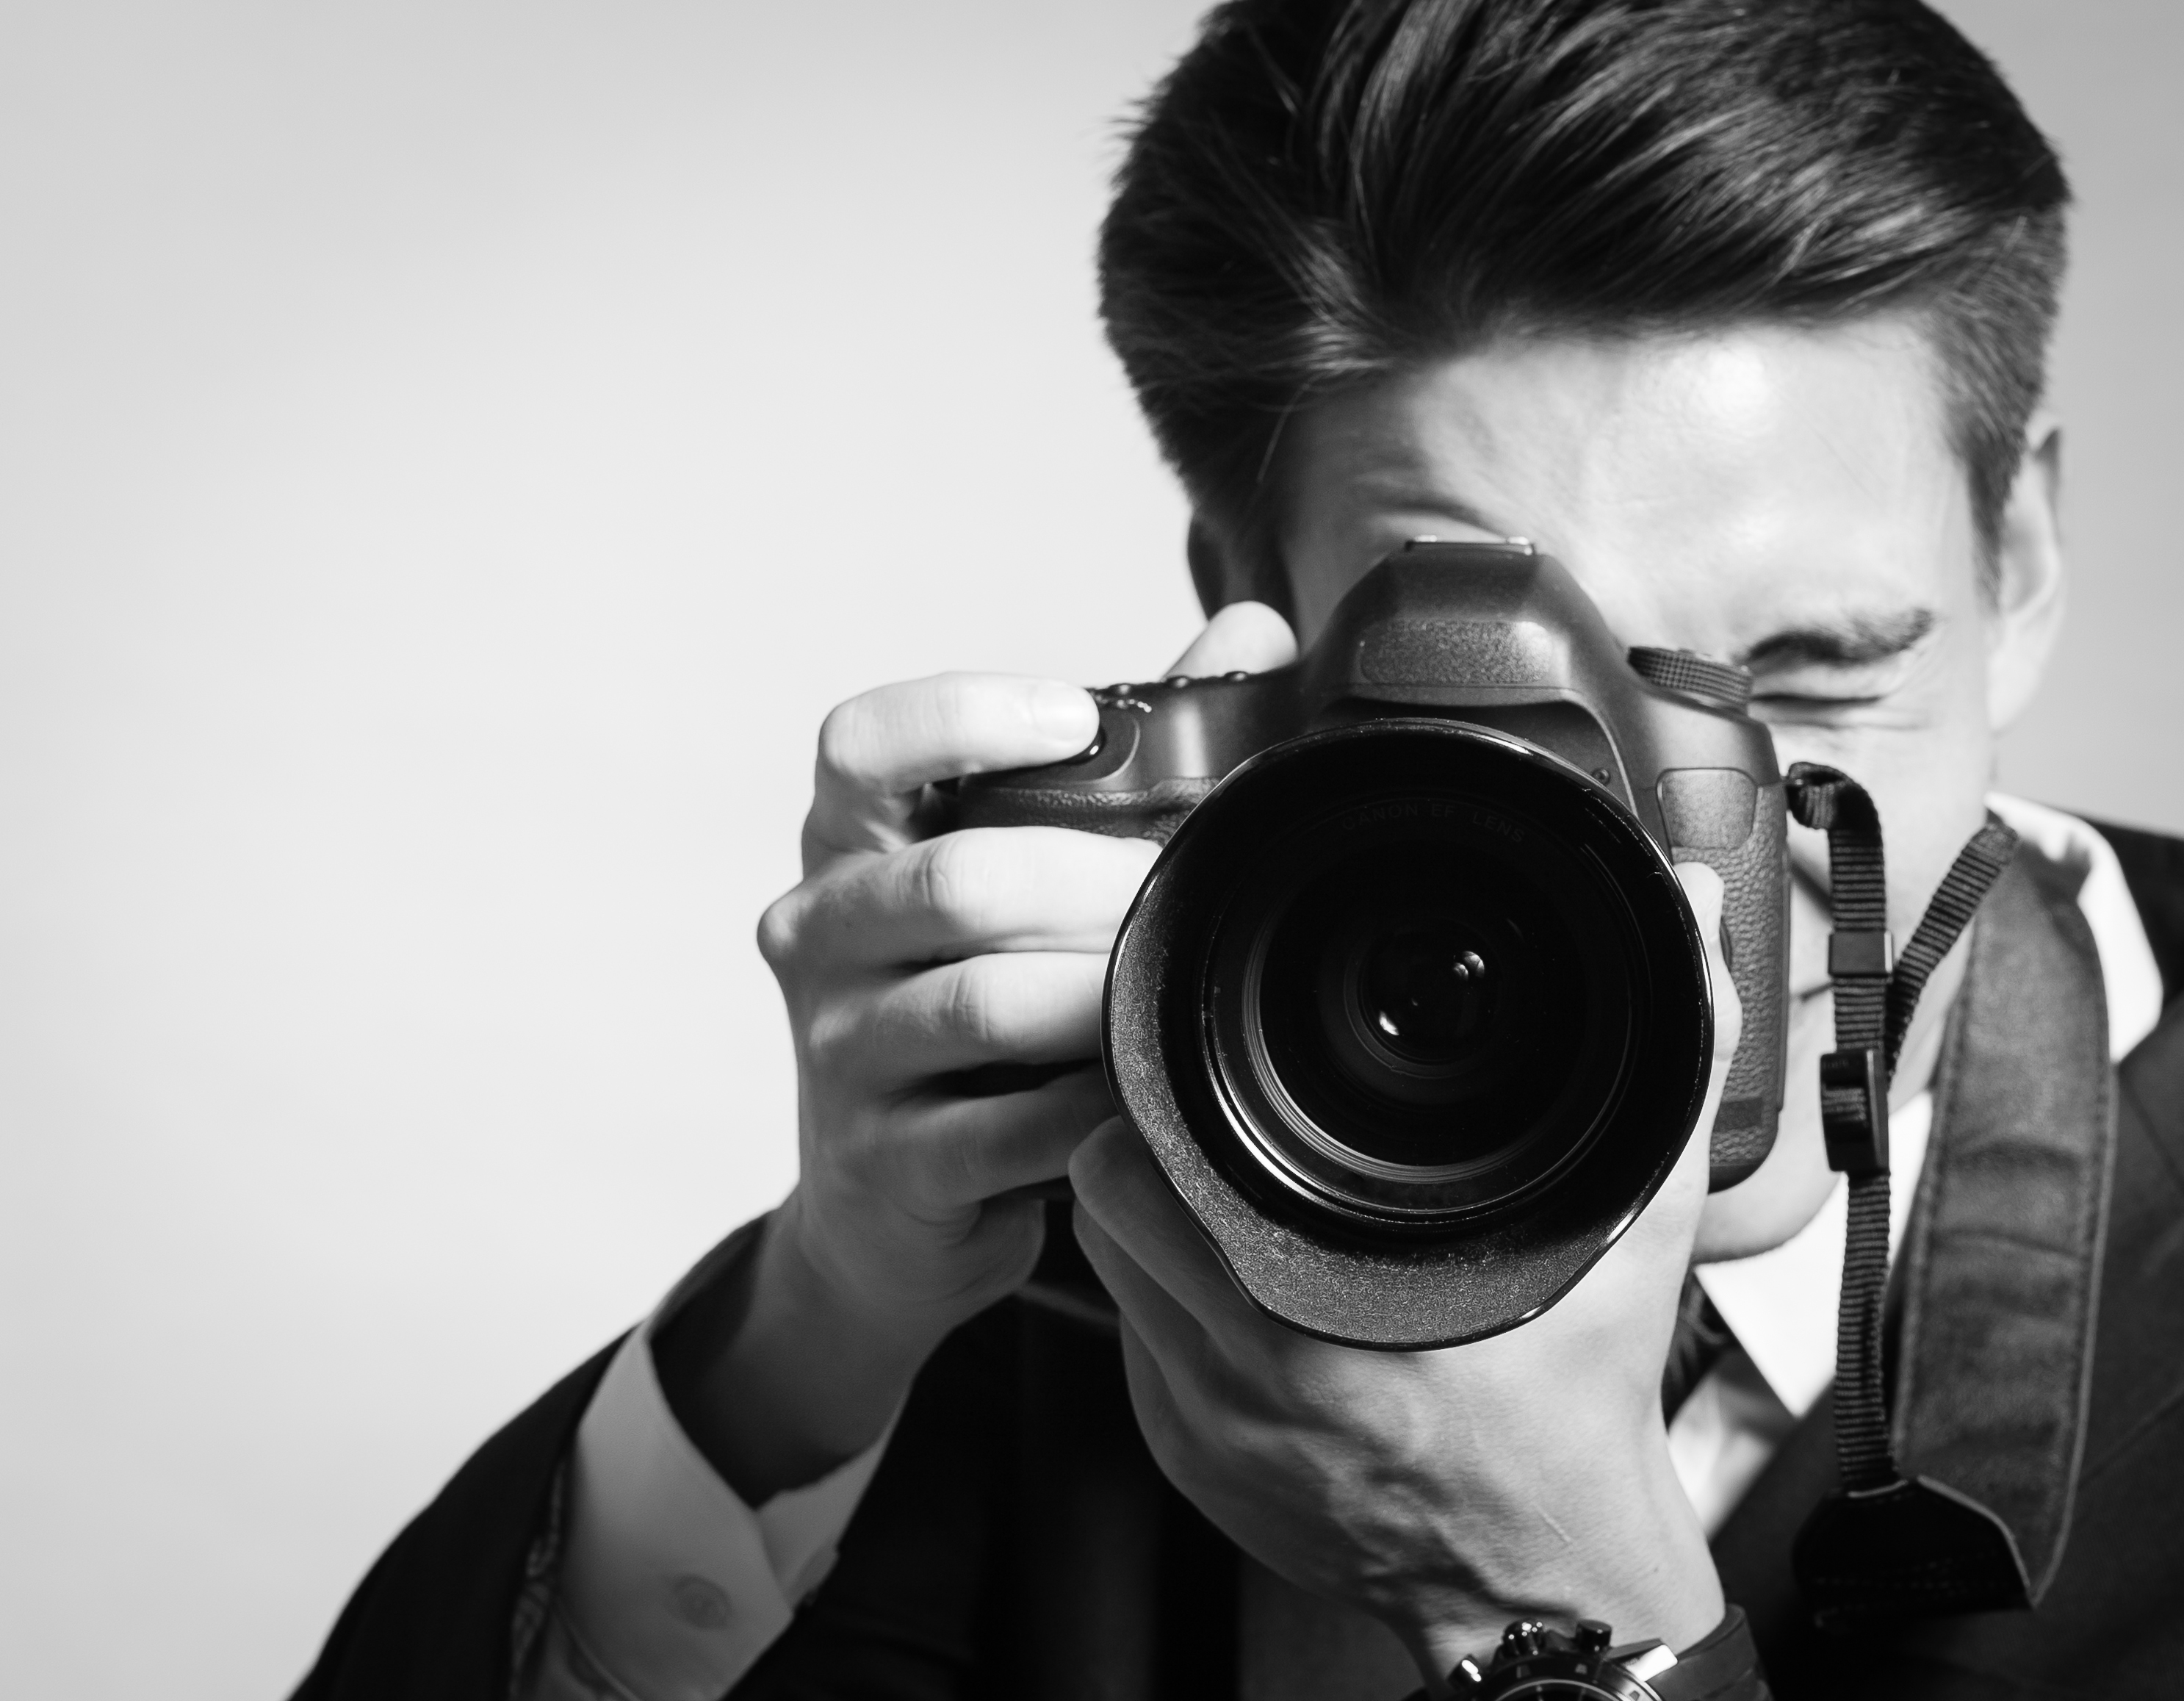 DSLR Vs. Mirrorless: Which Camera Is Best For You?